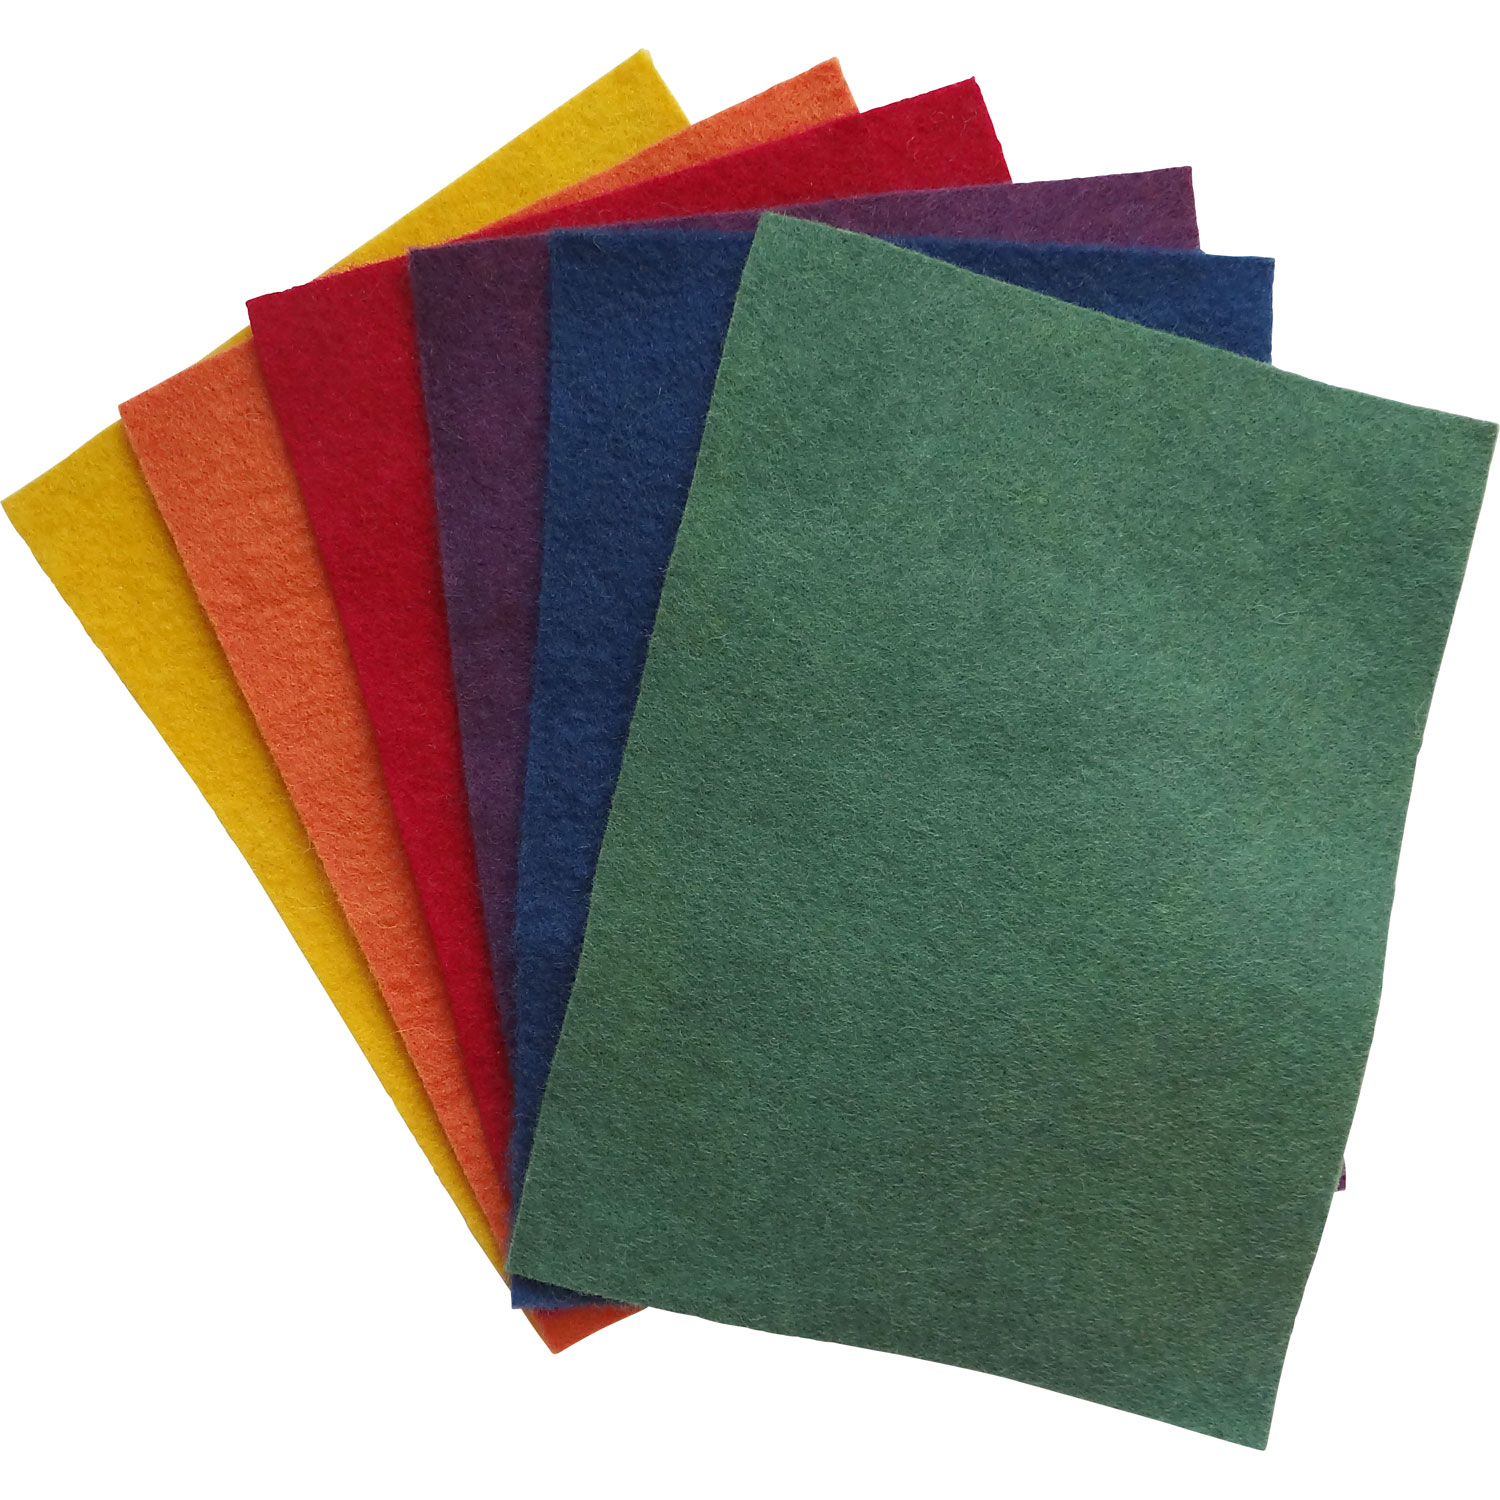 Set of Filges Plant-dyed Woolfelt Swatches in 6 Bright Colours